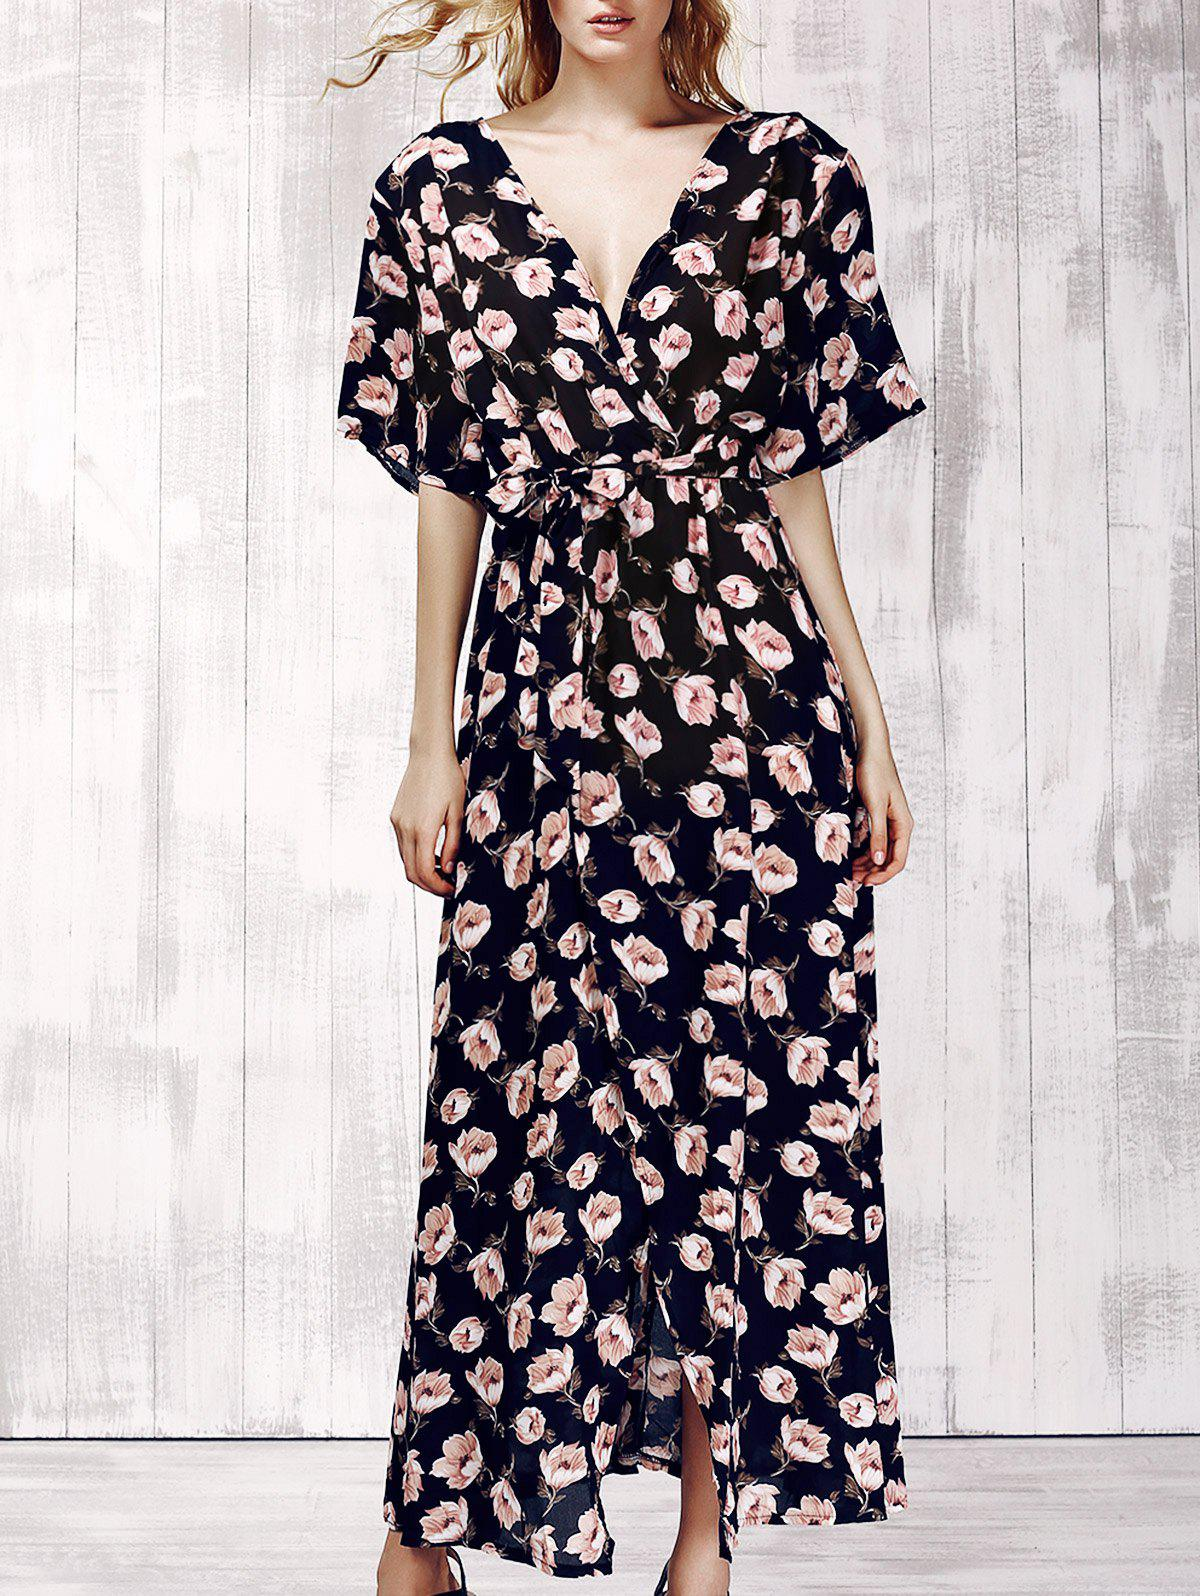 Stylish Women's Plunging Neck Short Sleeve Floral Print Maxi Dress